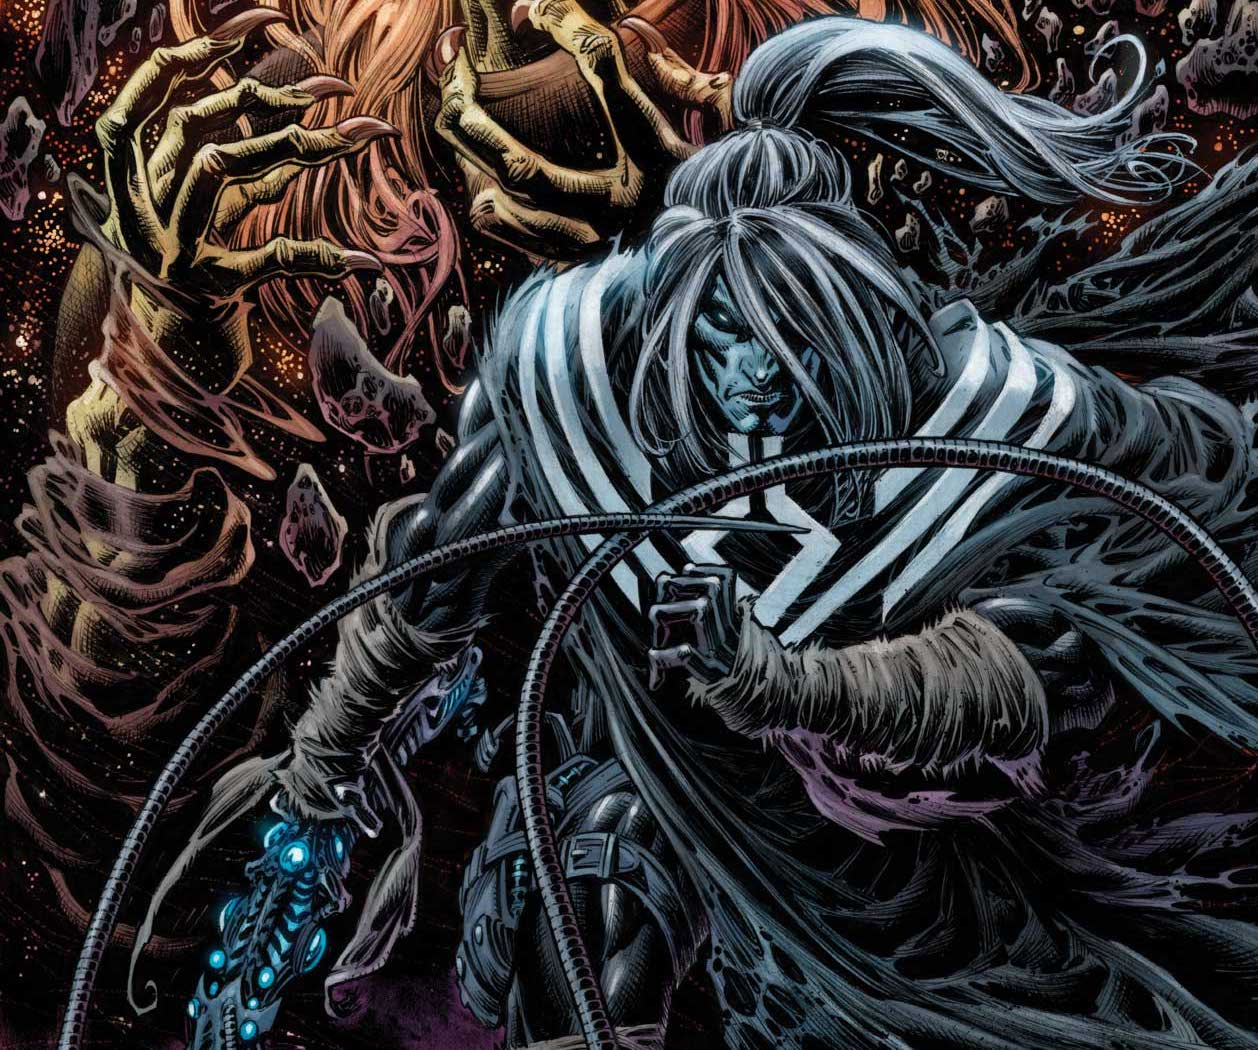 EXCLUSIVE Marvel First Look: Web of Venom: Wraith one-shot